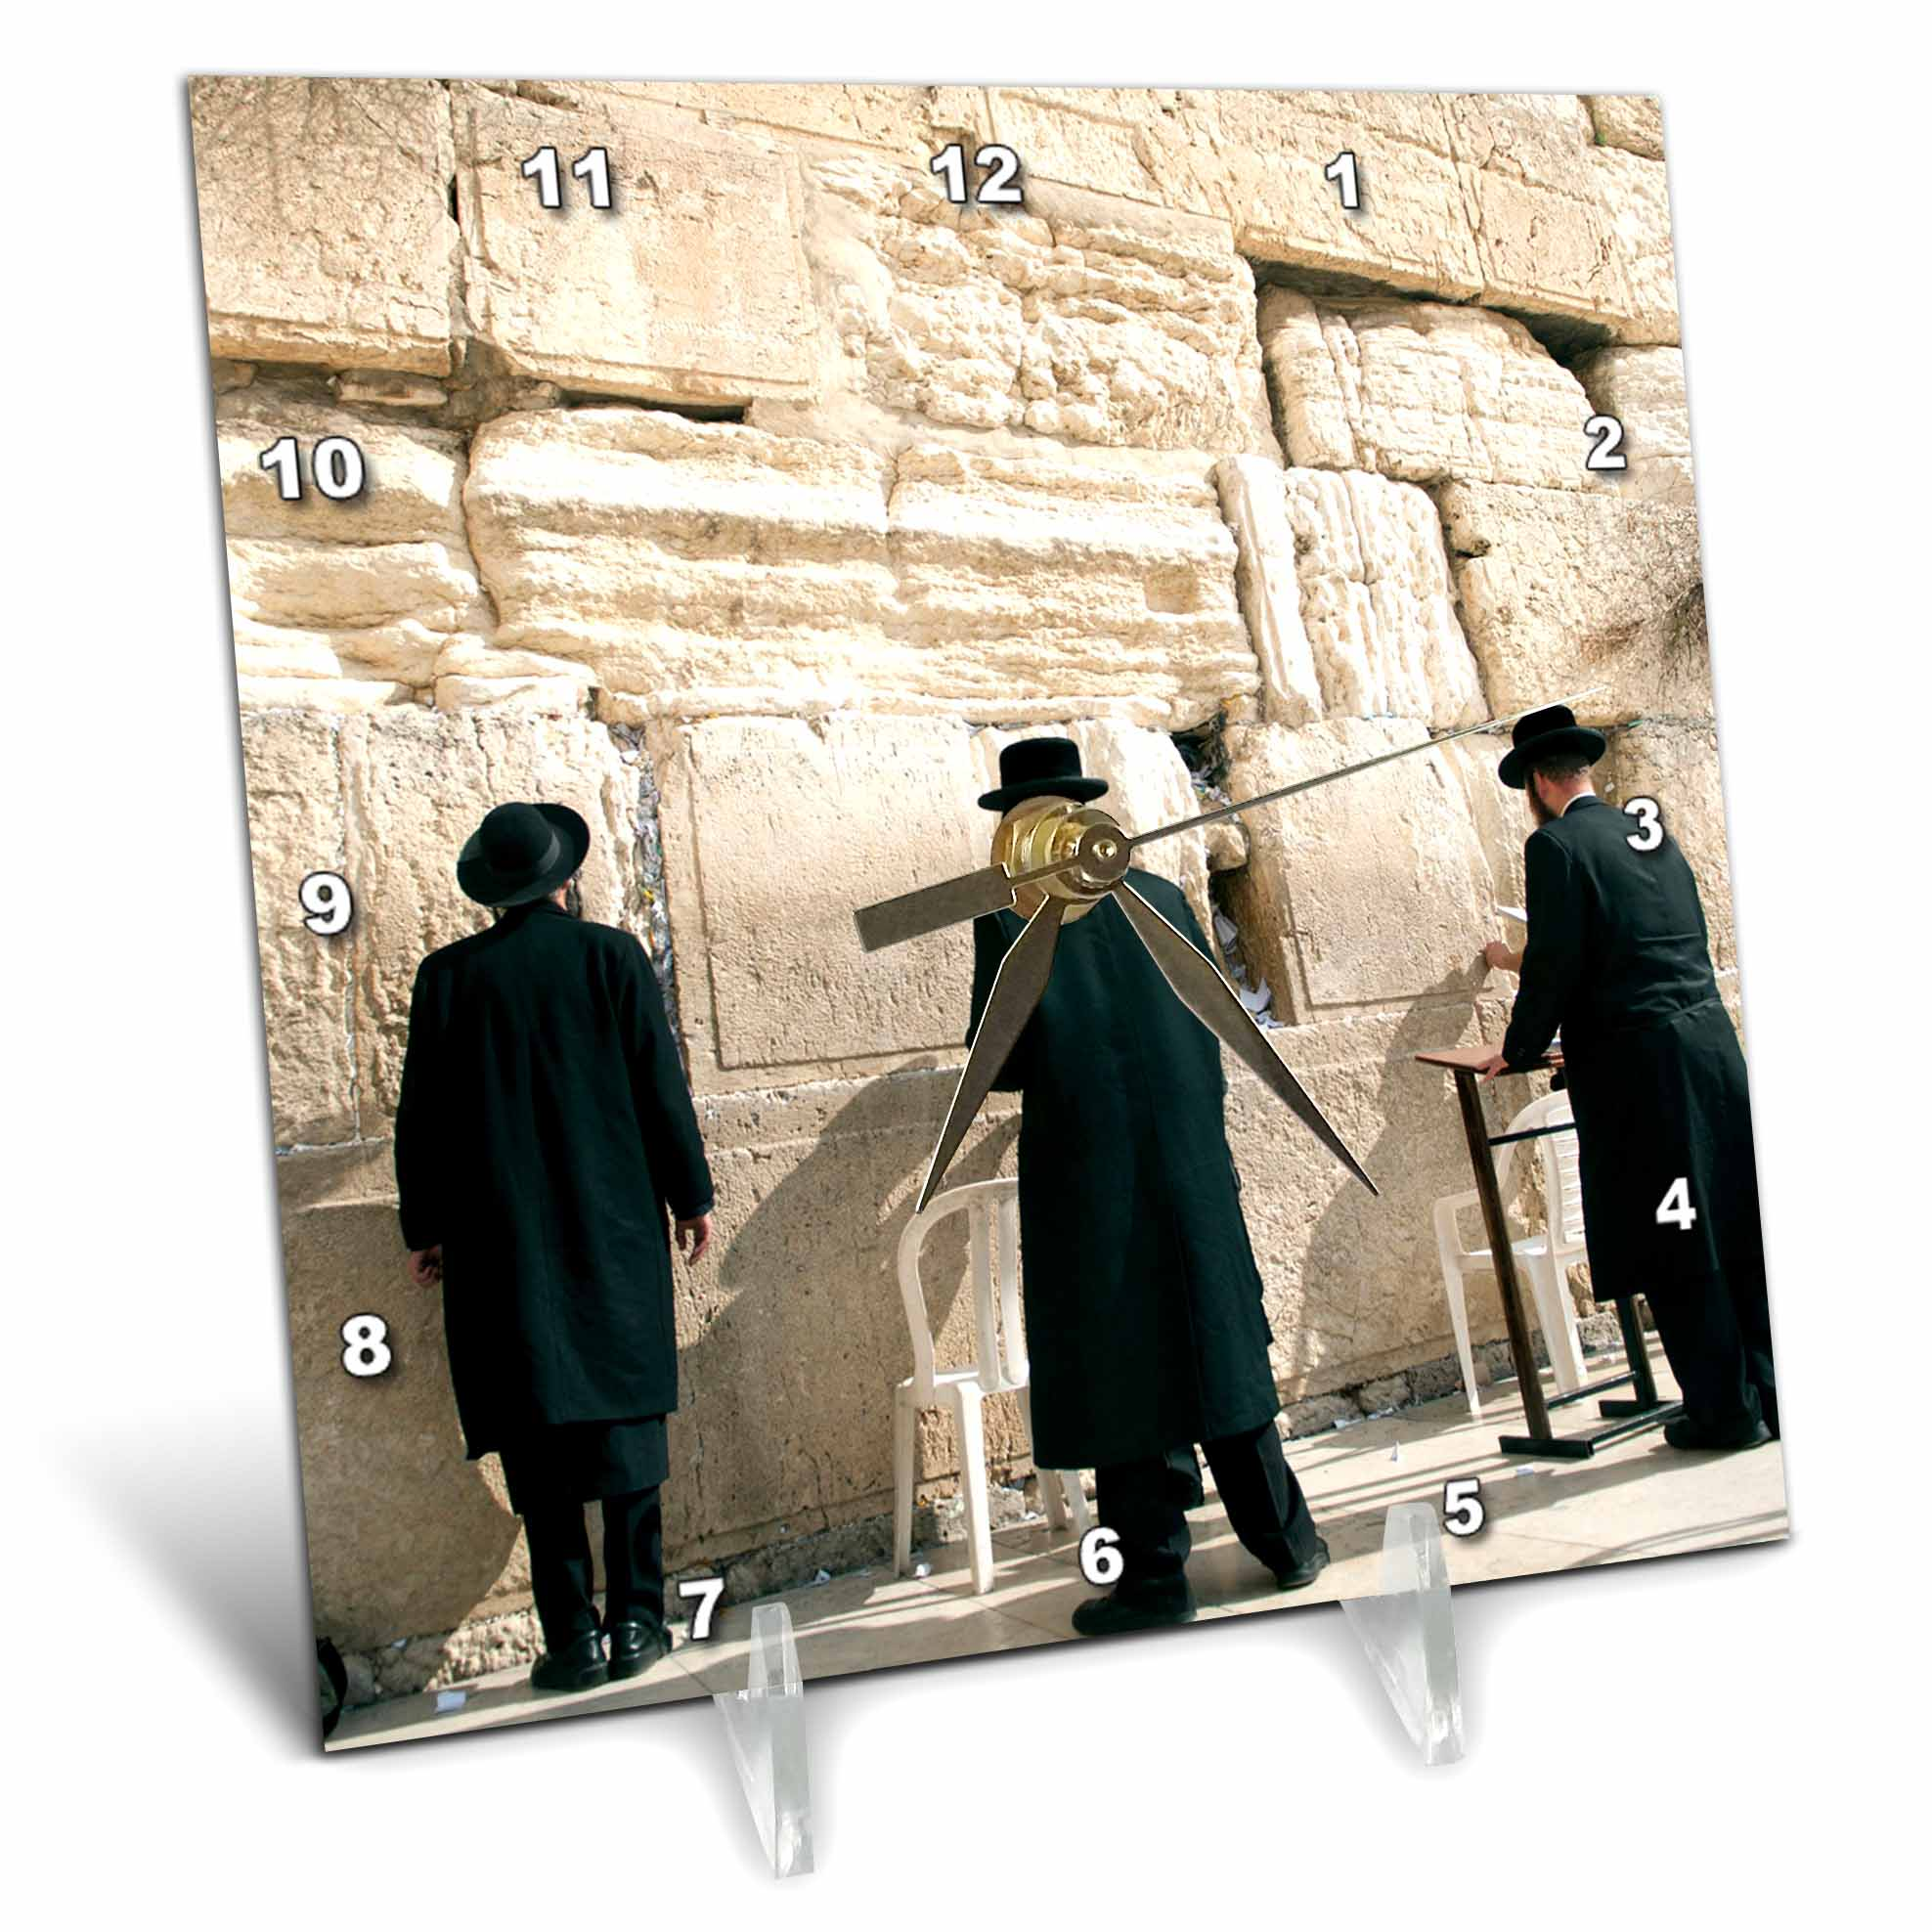 3dRose Israel, Jerusalem, Orthodox men pray, Western Wall AS14 DNY0031 David Noyes, Desk Clock, 6 by 6-inch by 3dRose